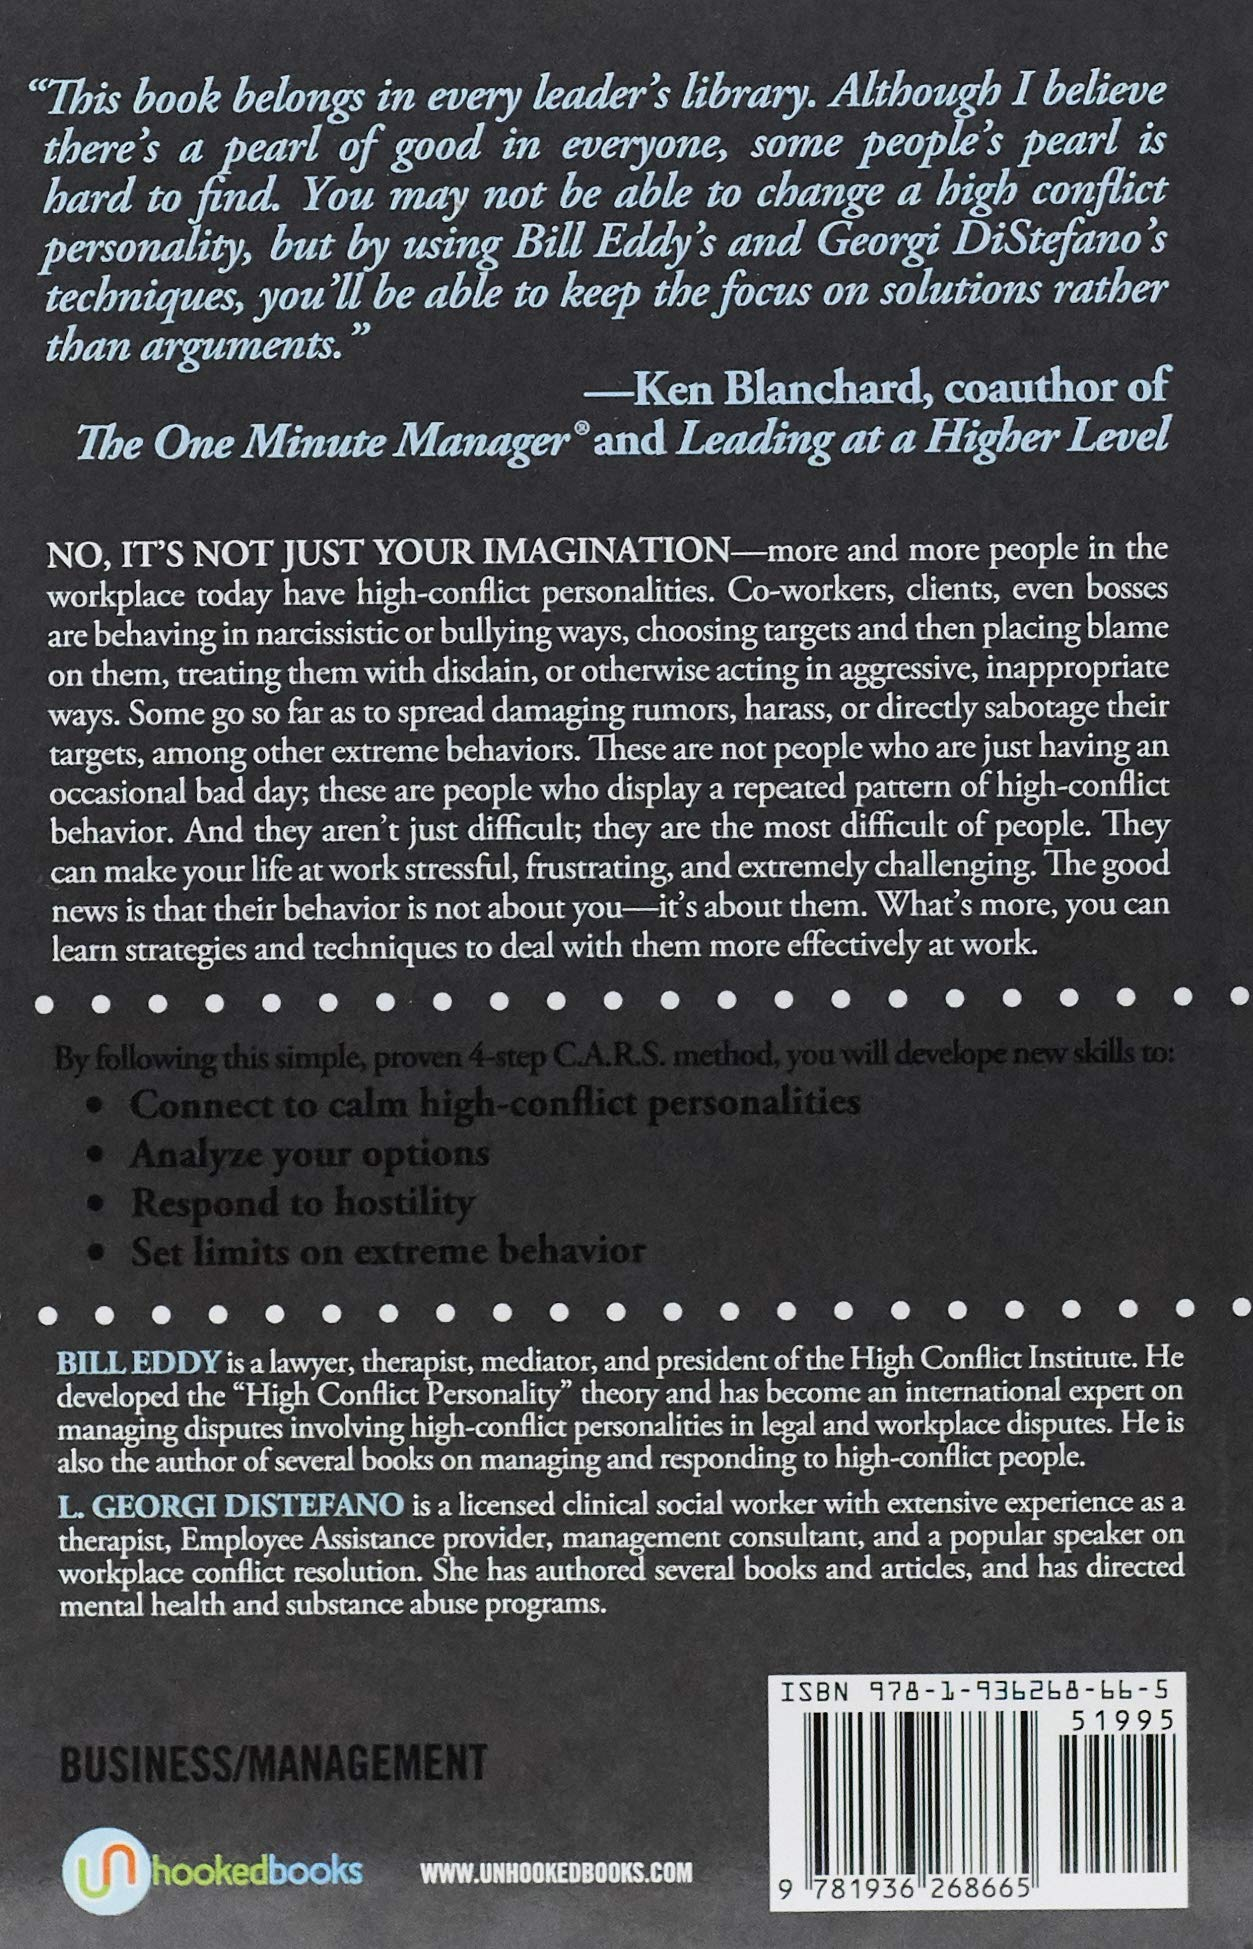 It's All Your Fault at Work!: Managing Narcissists and Other High-Conflict People by Unhooked Books (Image #2)